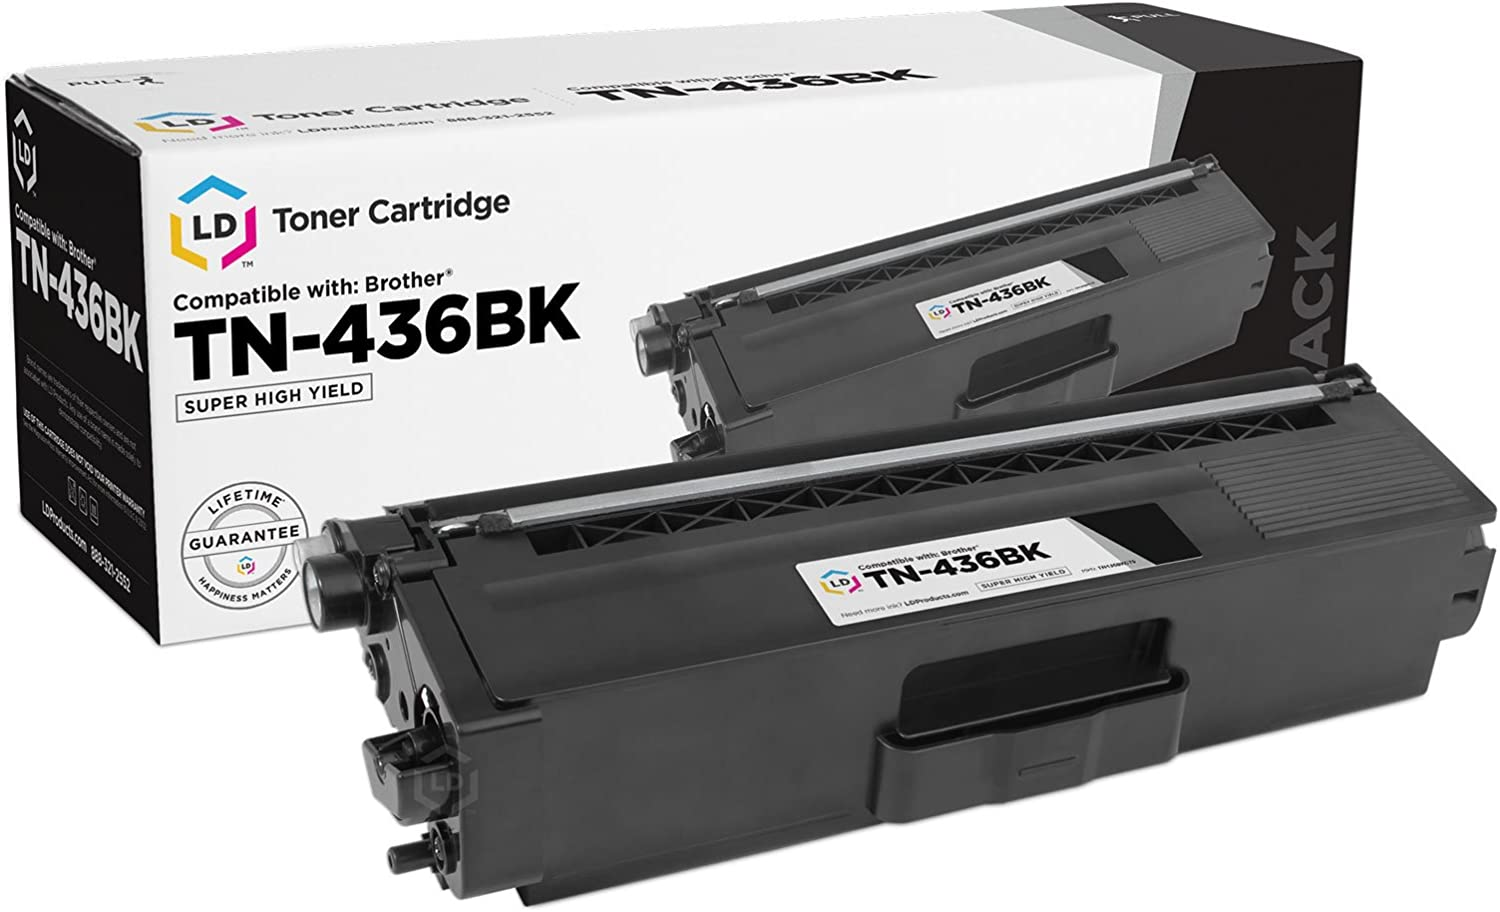 LD Compatible Toner Cartridge Replacement for Brother TN436 Super High Yield 2 Black, 1 Cyan, 1 Magenta, 1 Yellow, 5-Pack